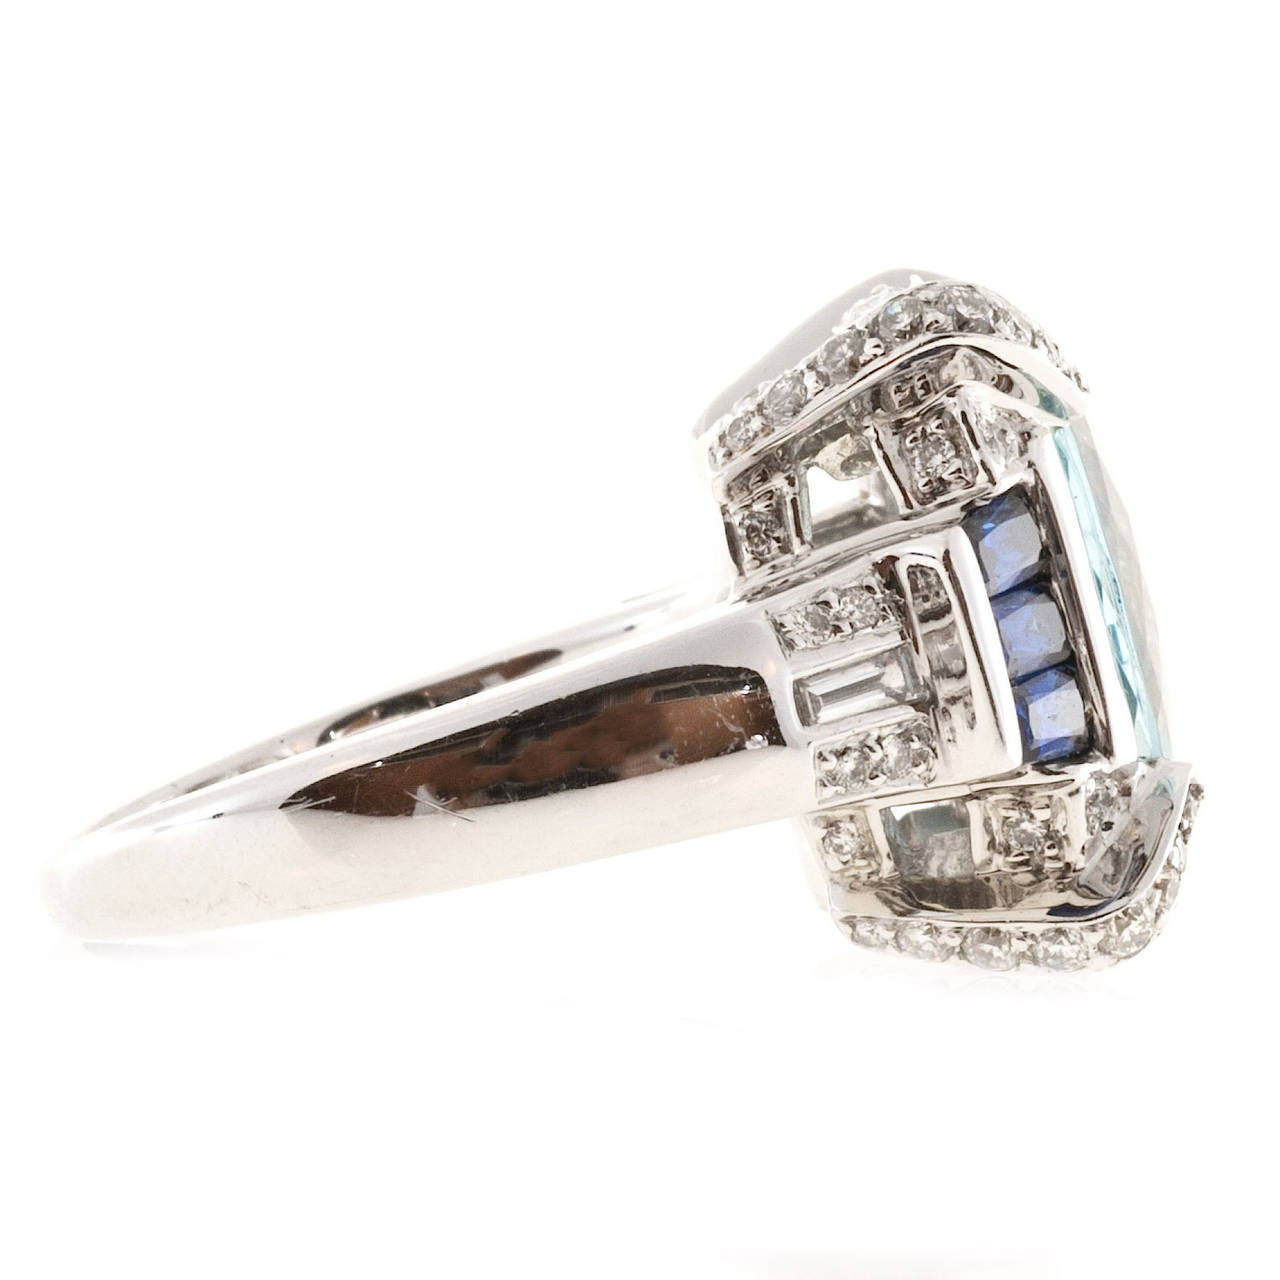 Charles Krypell Aquamarine Sapphire Diamond Gold Cocktail Ring In Good Condition For Sale In Stamford, CT